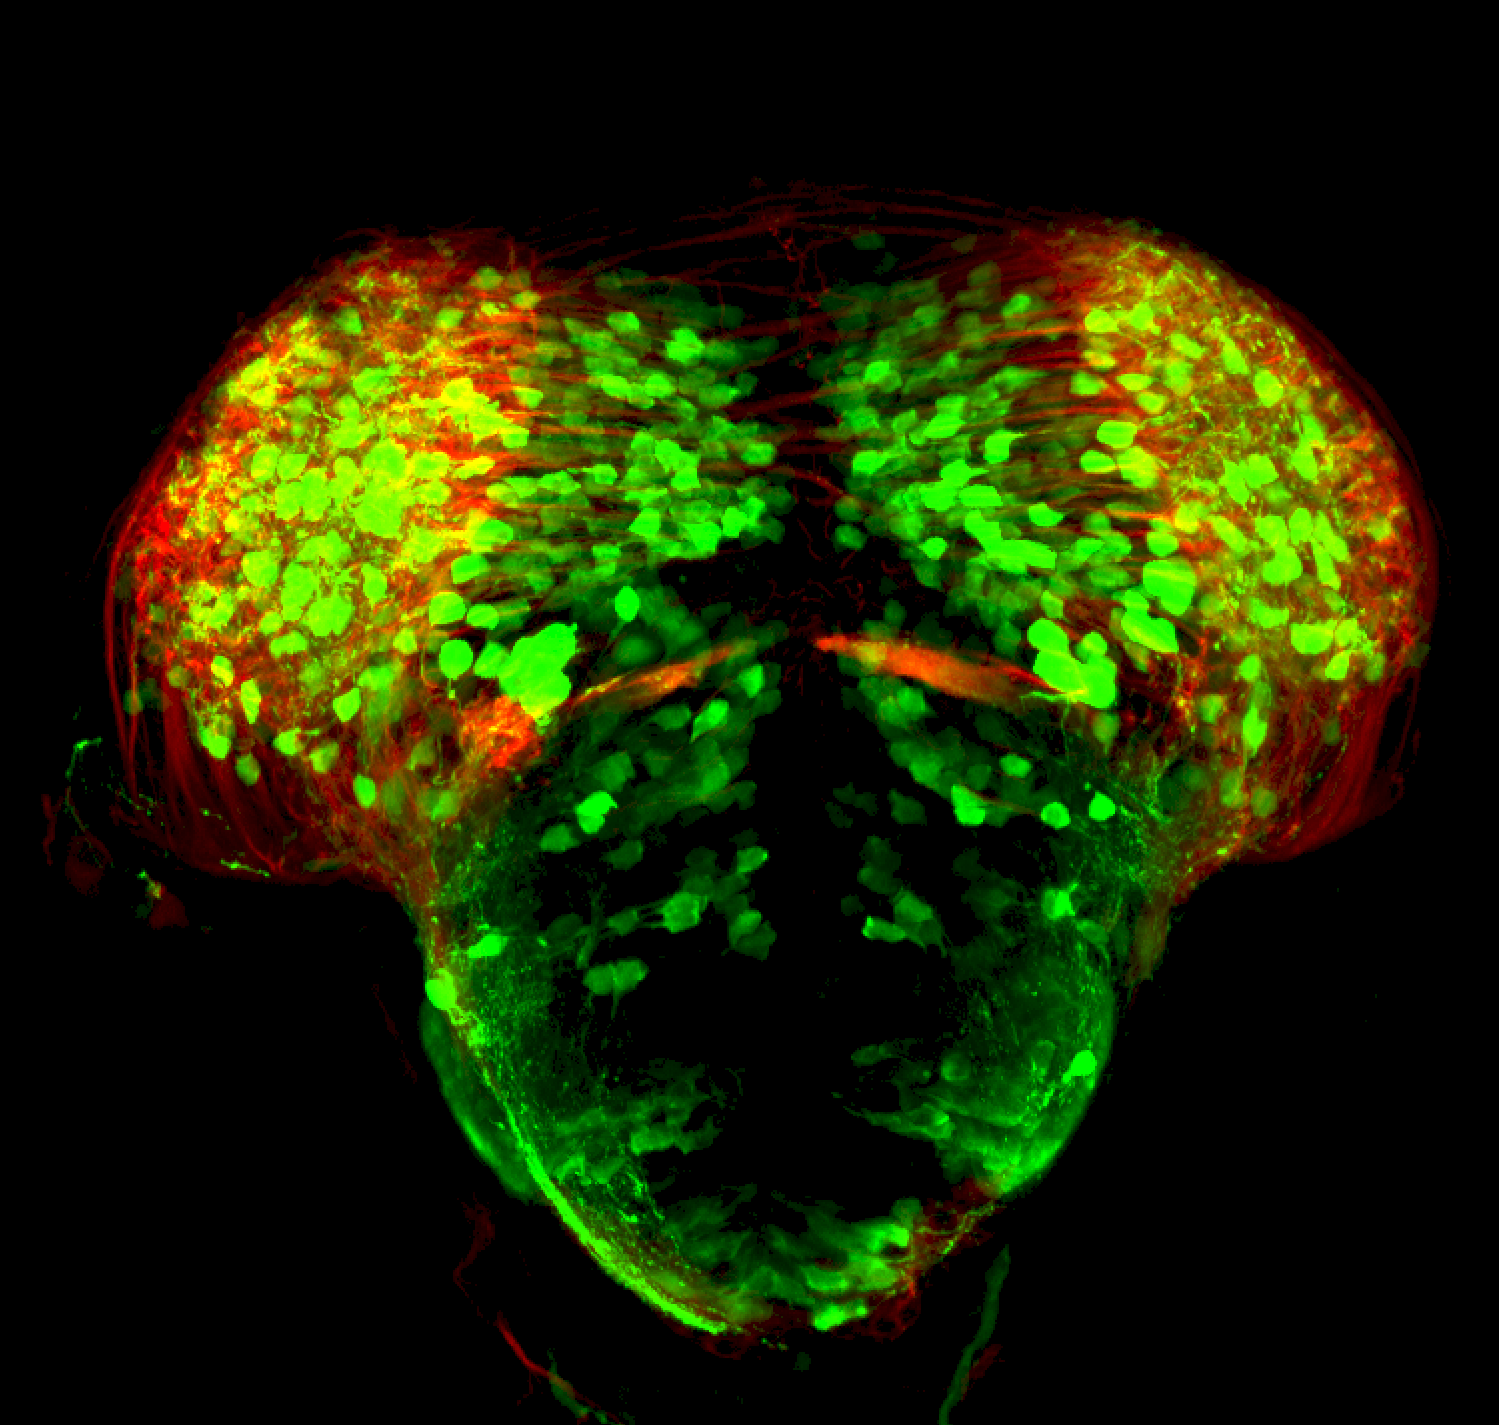 3dpf thick section of dlx:GFP through midbrain/diencephalon